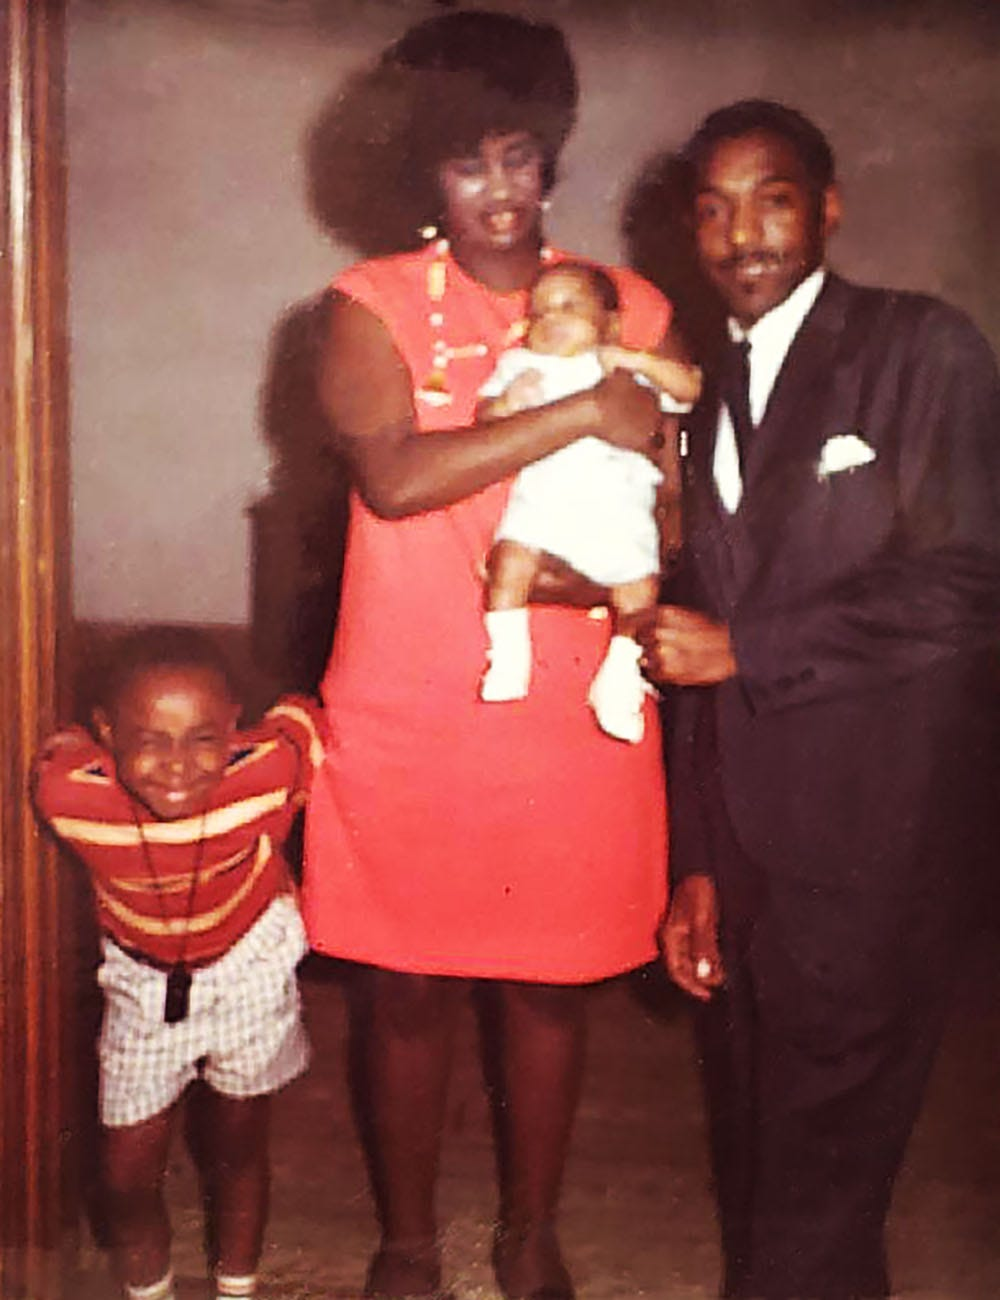 Otha R. and James D. Causey pose for a photo with their son, James E. Causey, on his first birthday Aug. 1, 1970. With them is their nephew, Chris McKnight.